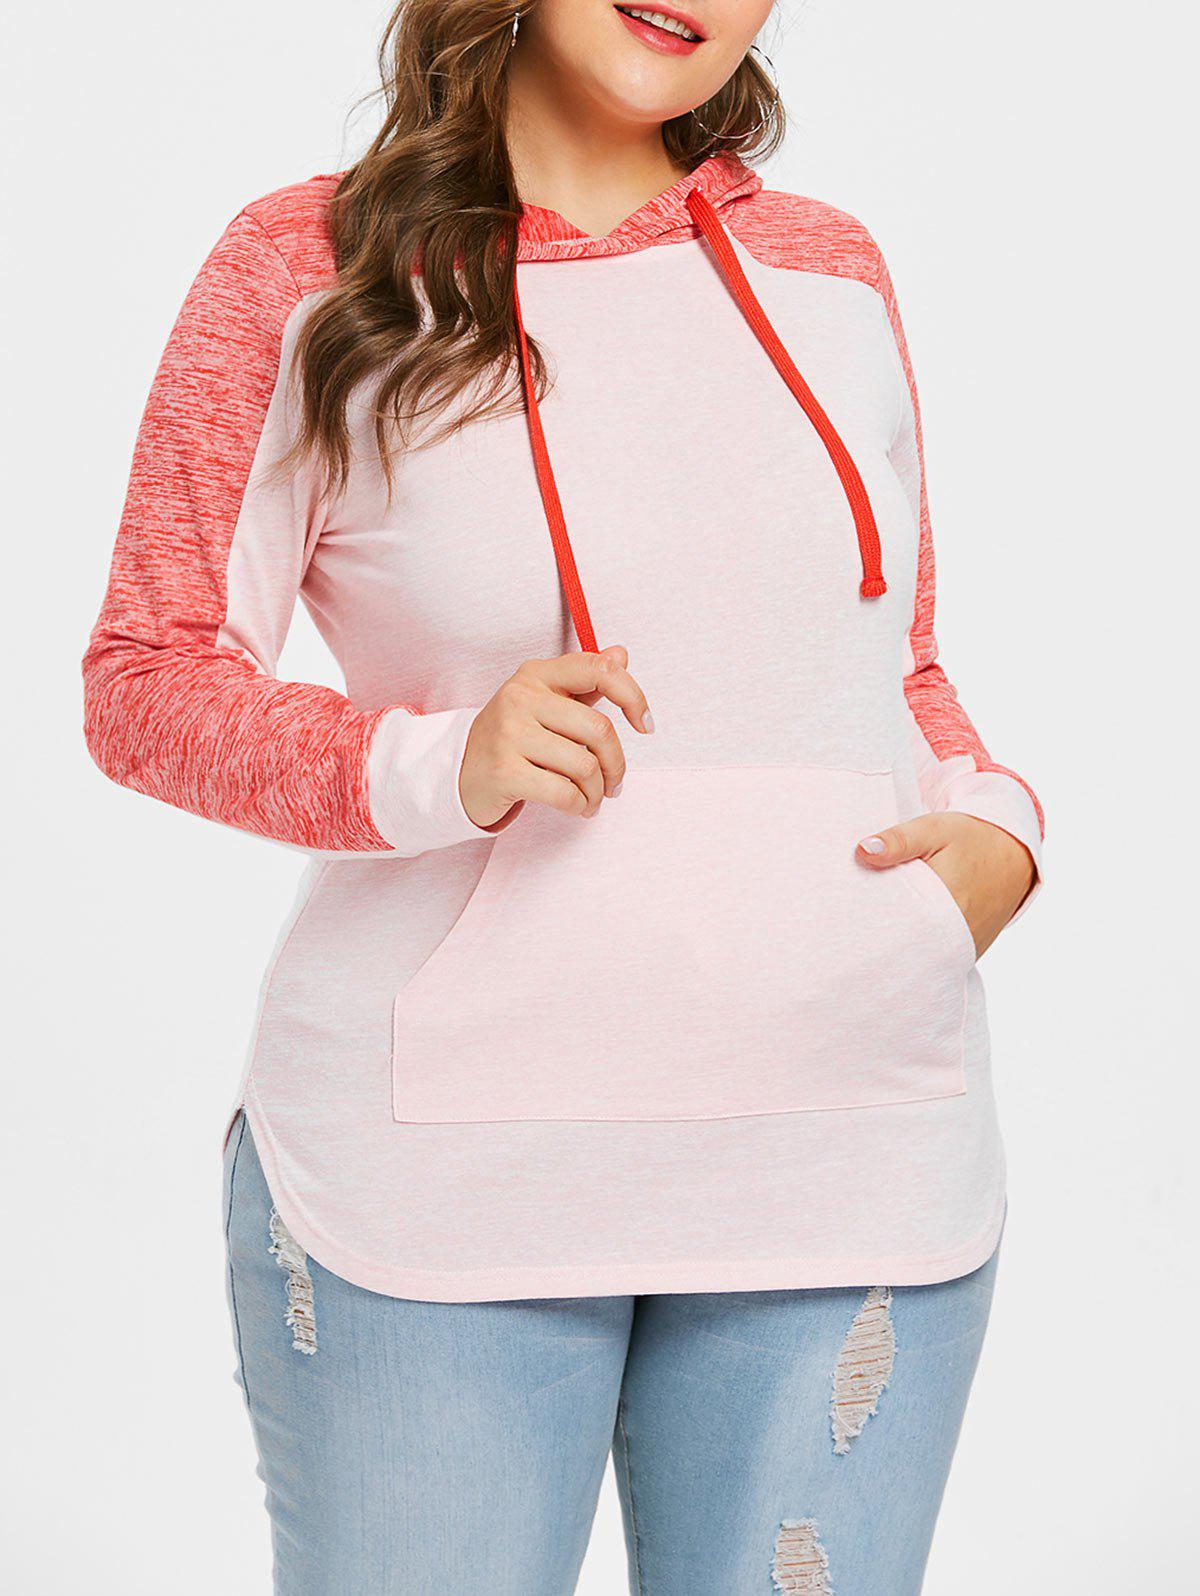 Plus Size Fitted Kangaroo Pocket Hoodie - multicolor 4X